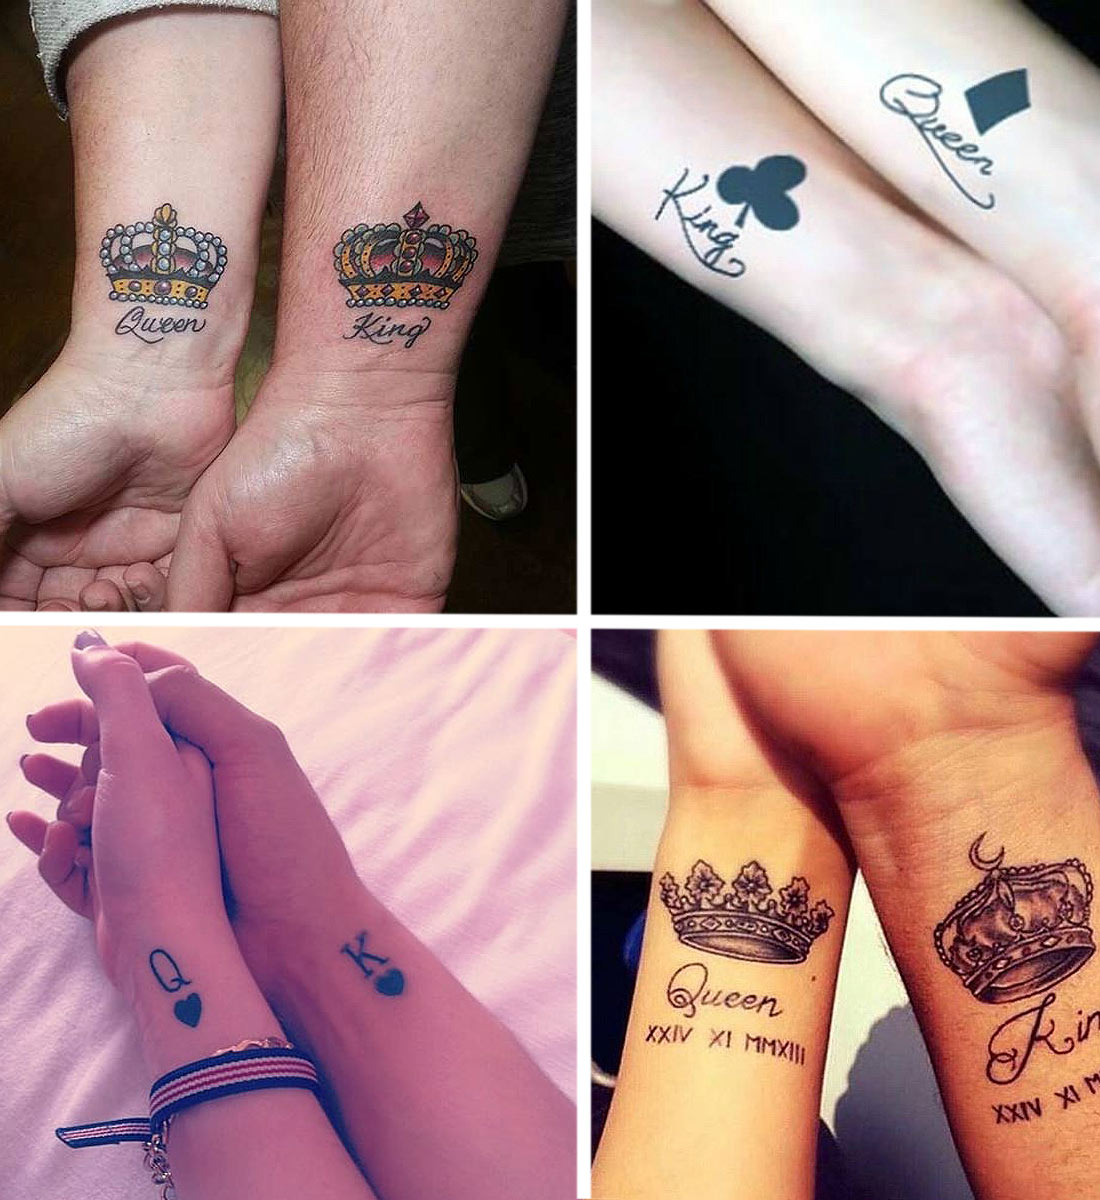 252039d08 wrist-tattoos-couple-ling-queen-tattoos-latest-trends